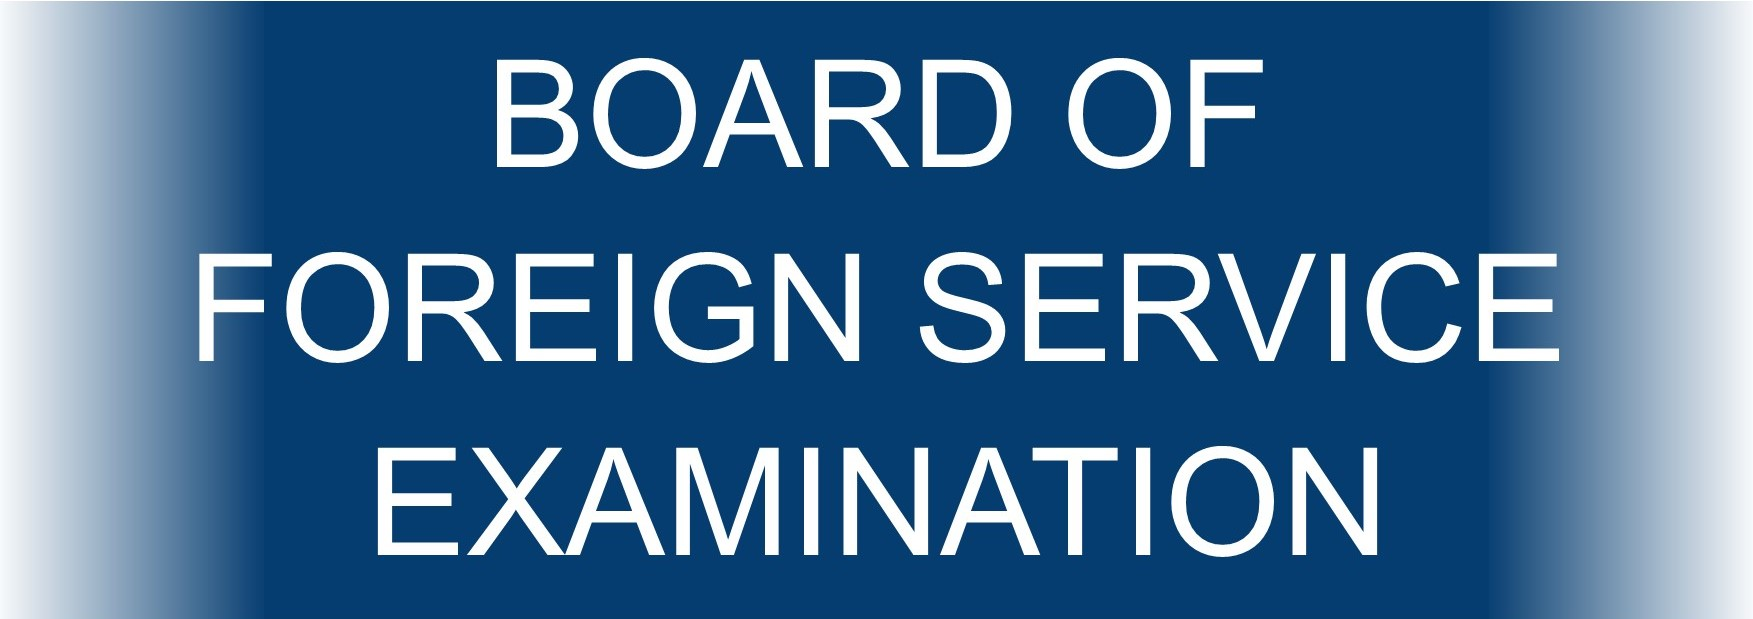 Board of Foreign Service Examination